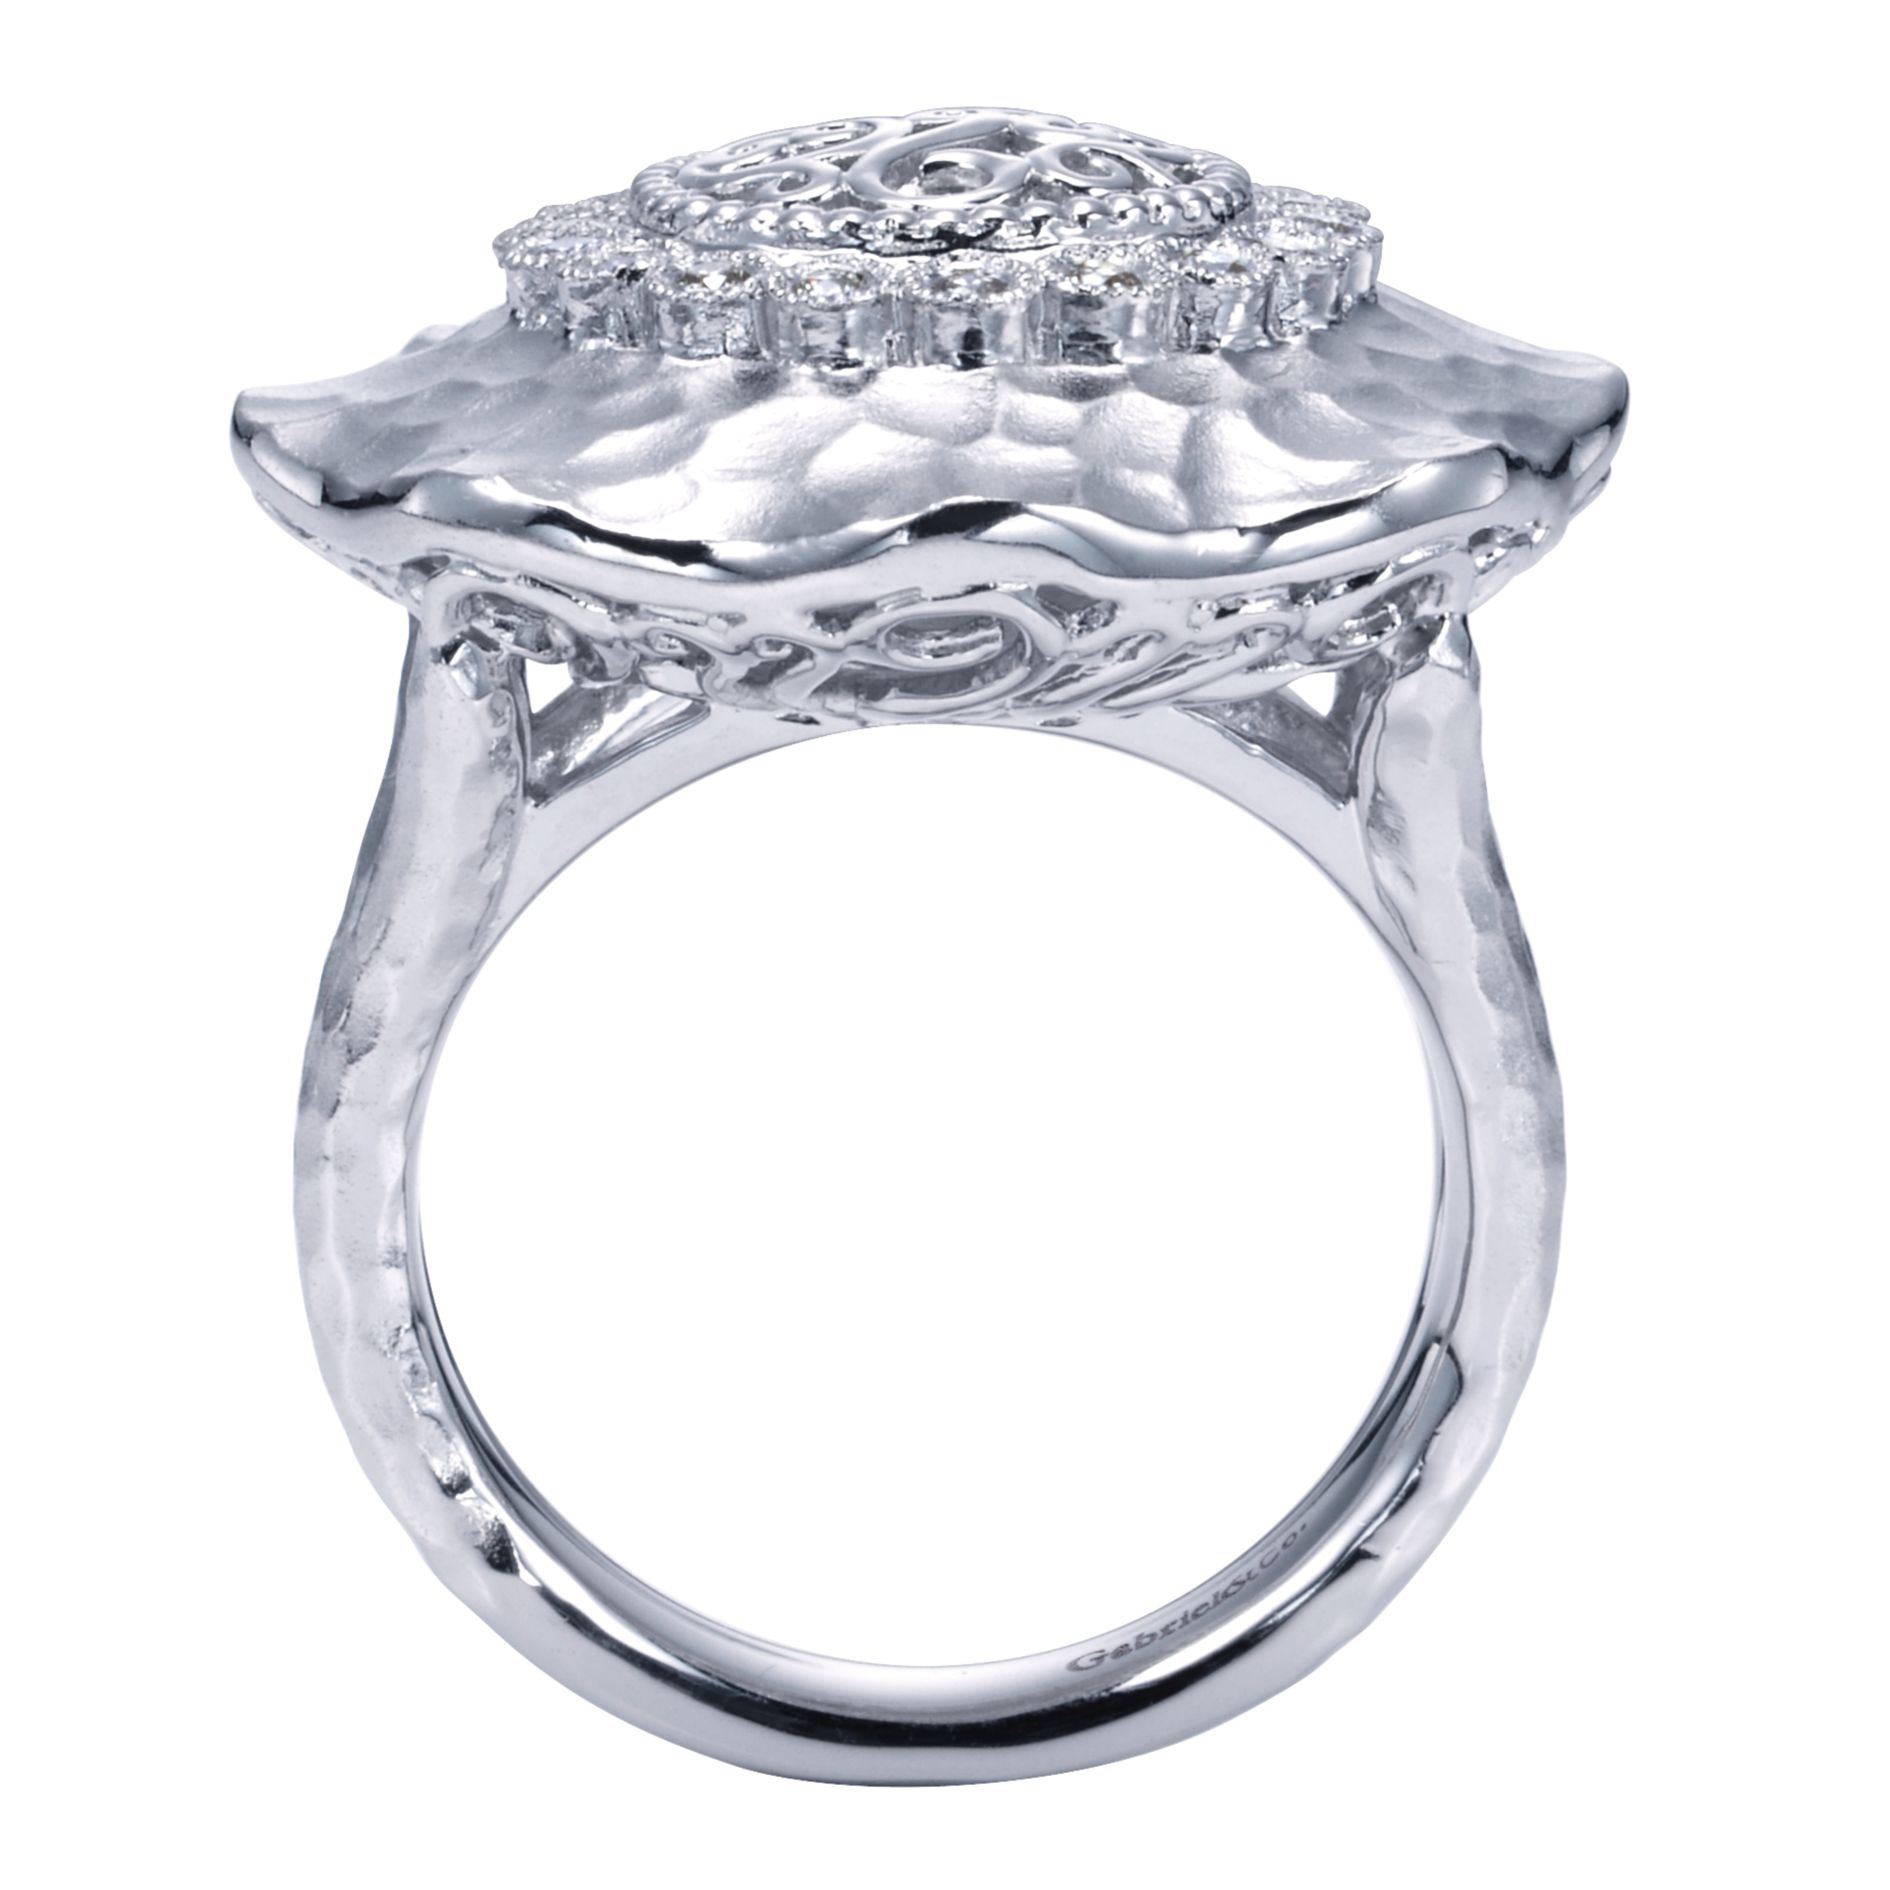 Rings - SILVER FASHION DIAMOND LADIES RING - image #2